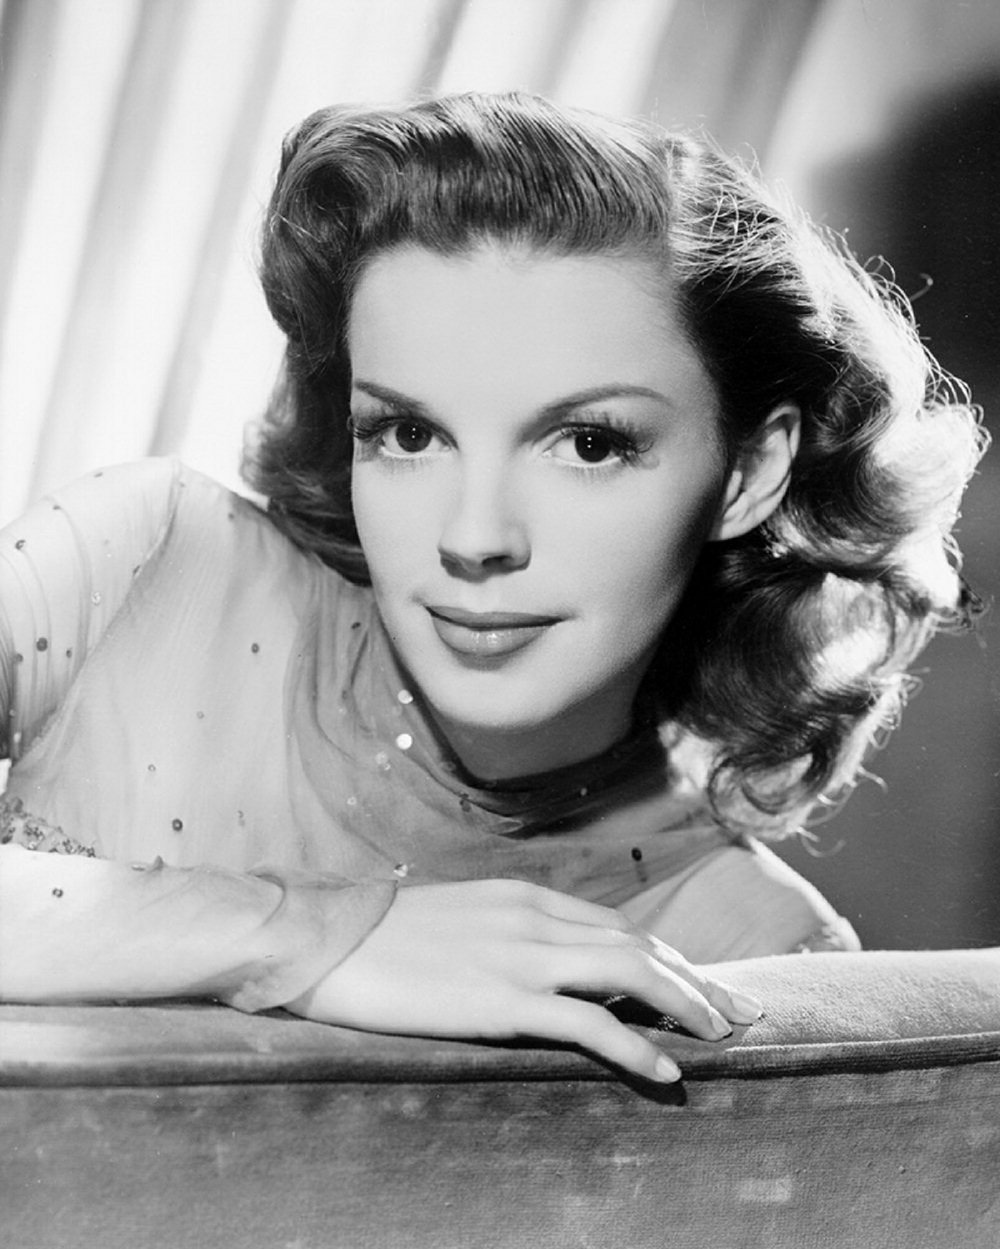 9. Judy Garland - Best Song: Have Yourself a Merry Little ChristmasWhy: It's such a classic, there's no way I couldn't include this in the list. If you're looking for a traditional Christmas album, put this on.